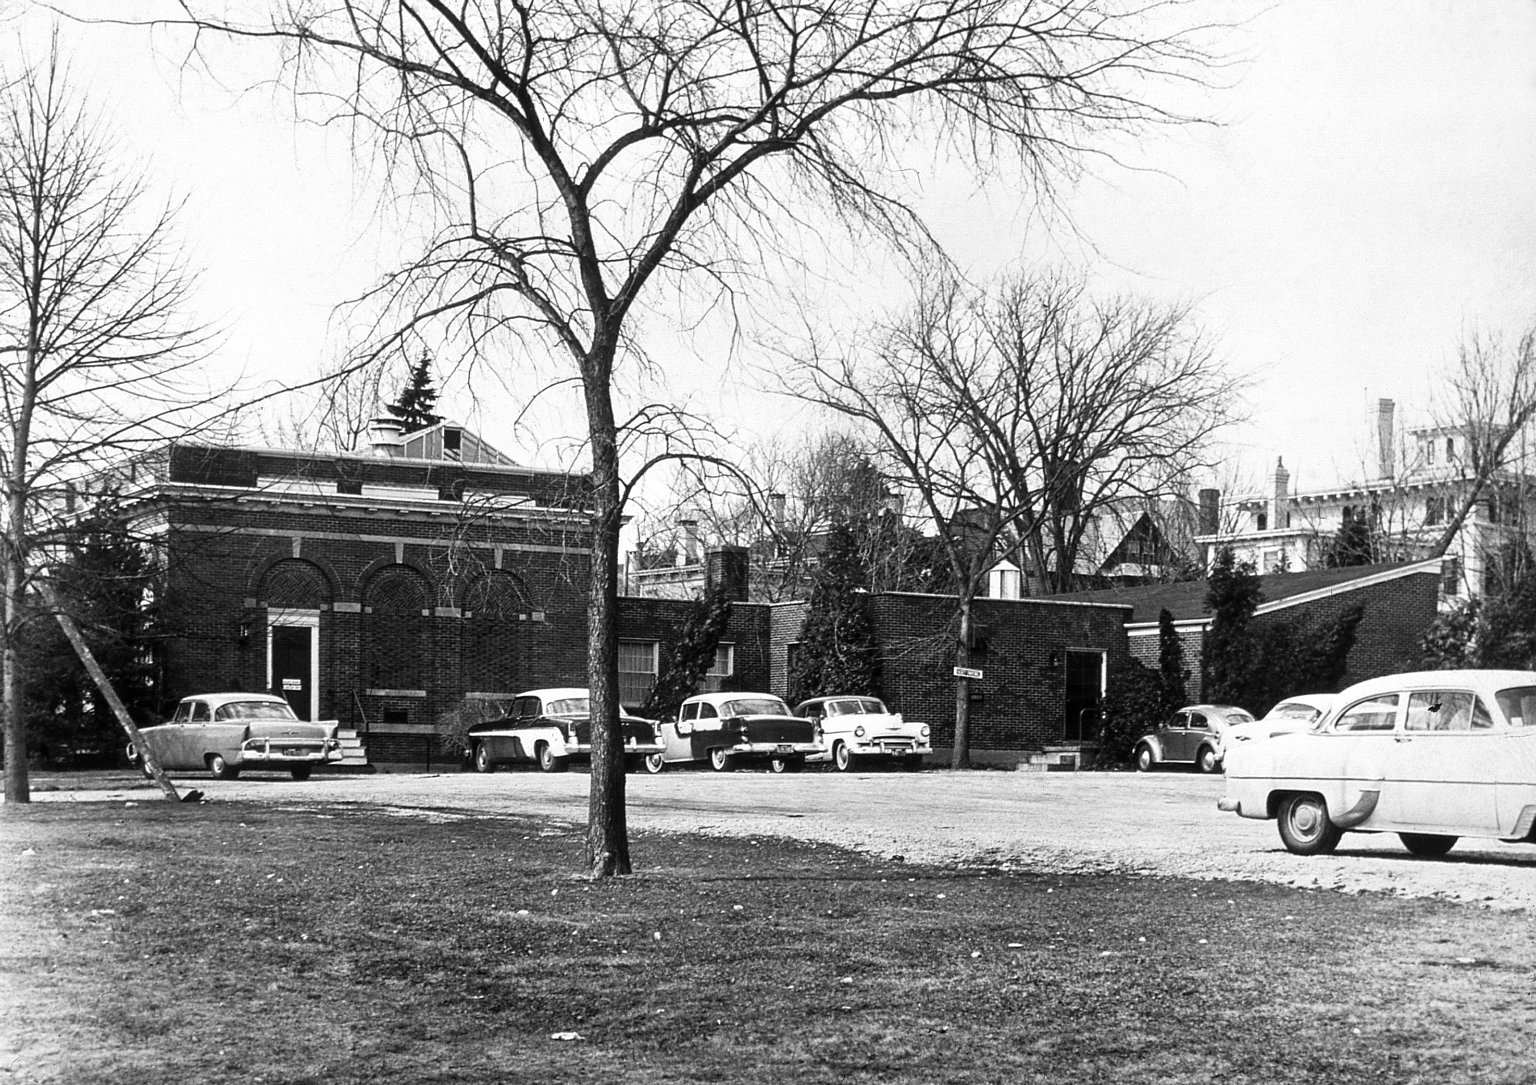 Exterior views of the Crapo Gallery and Studios Building